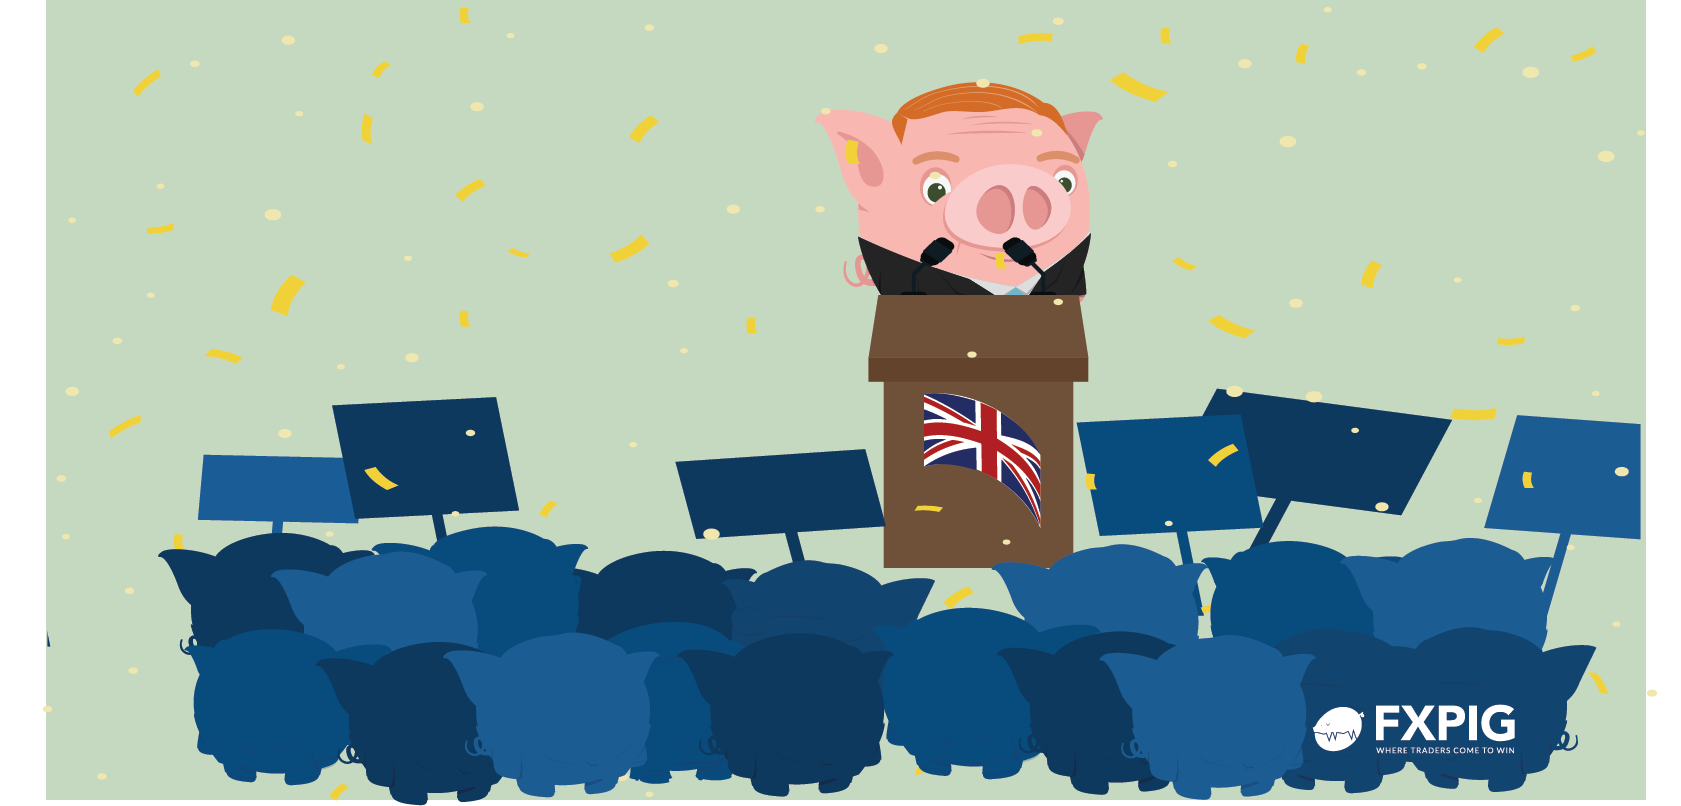 UK_elections_Forex-week-ahead_FXPIG